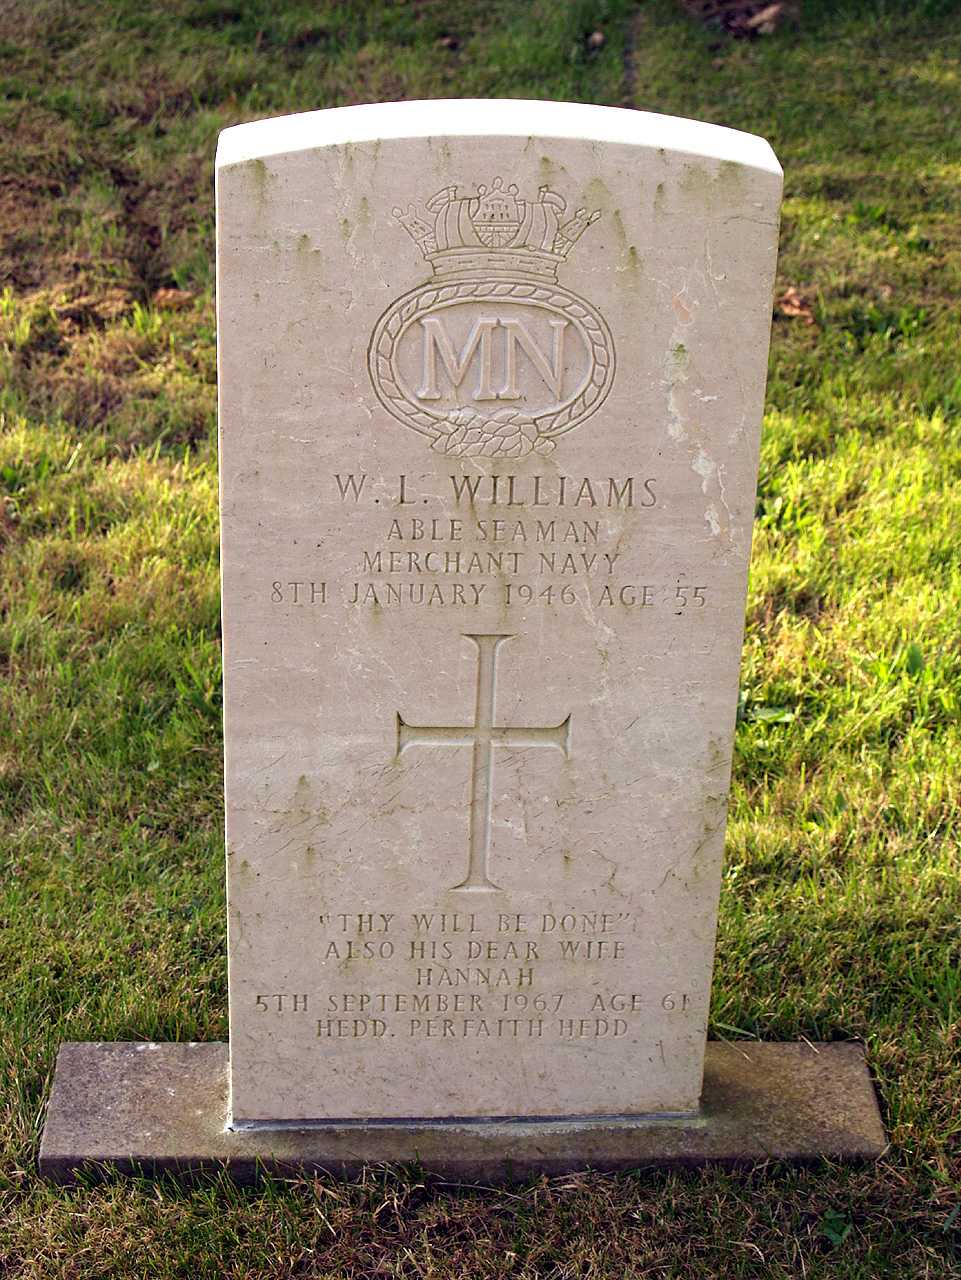 Anglesey, Rhosybol, Christ Church - War Grave of William Lewis Williams Merchant Navy killed 8th Jan 1946